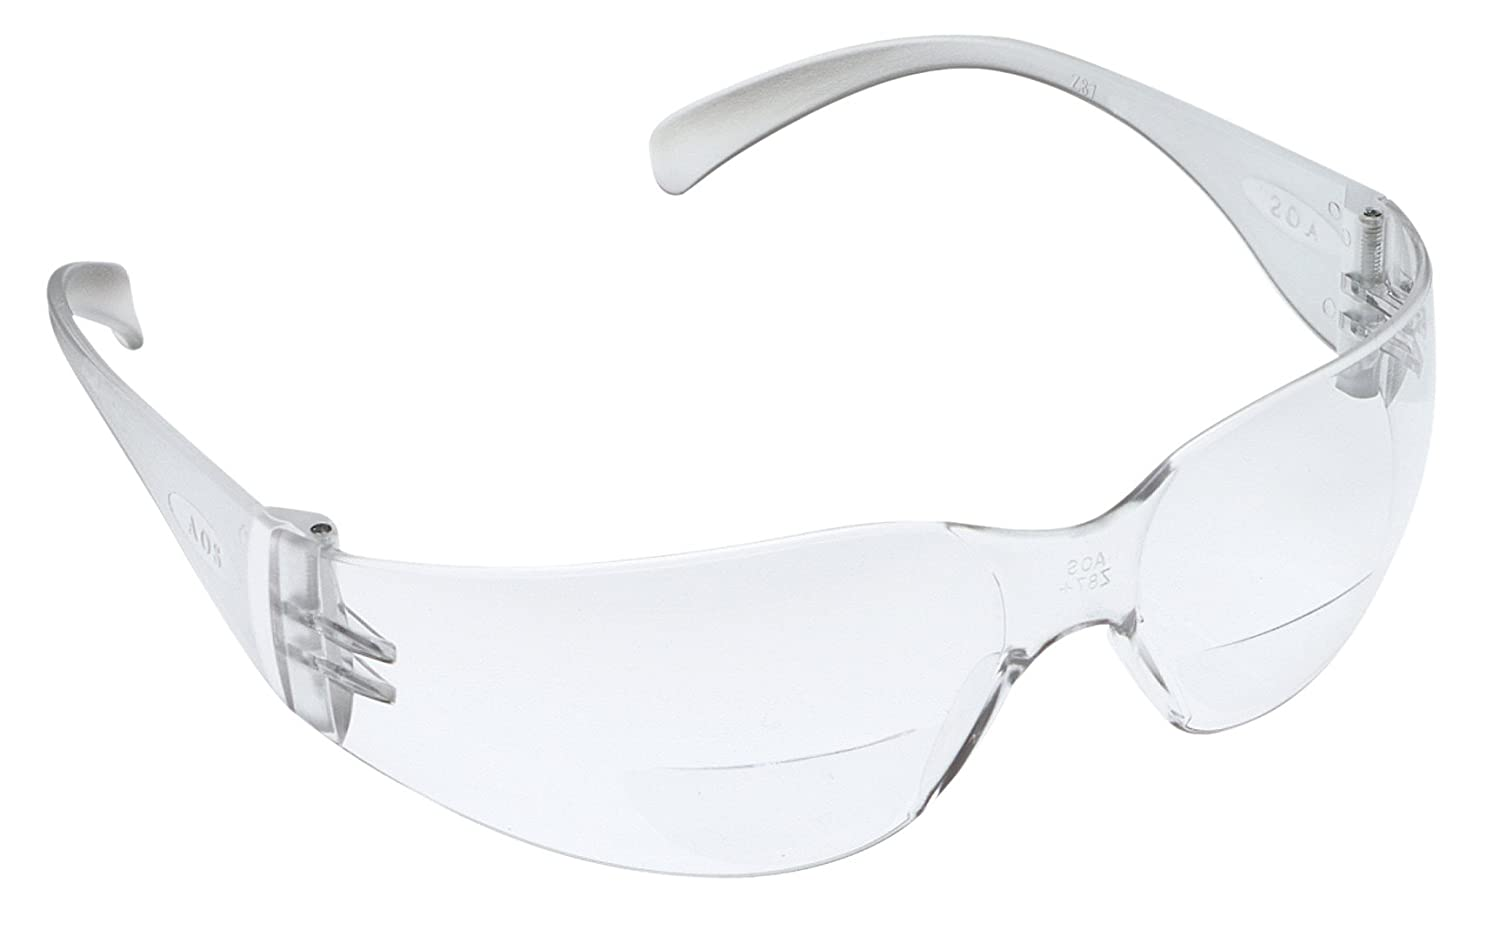 3M Virtua Reader Protective Eyewear, 11514-00000-20 Clear Anti-Fog Lens, Clear Temple, +2.0 Diopter (Pack of 20) by 3M B007JZDE98